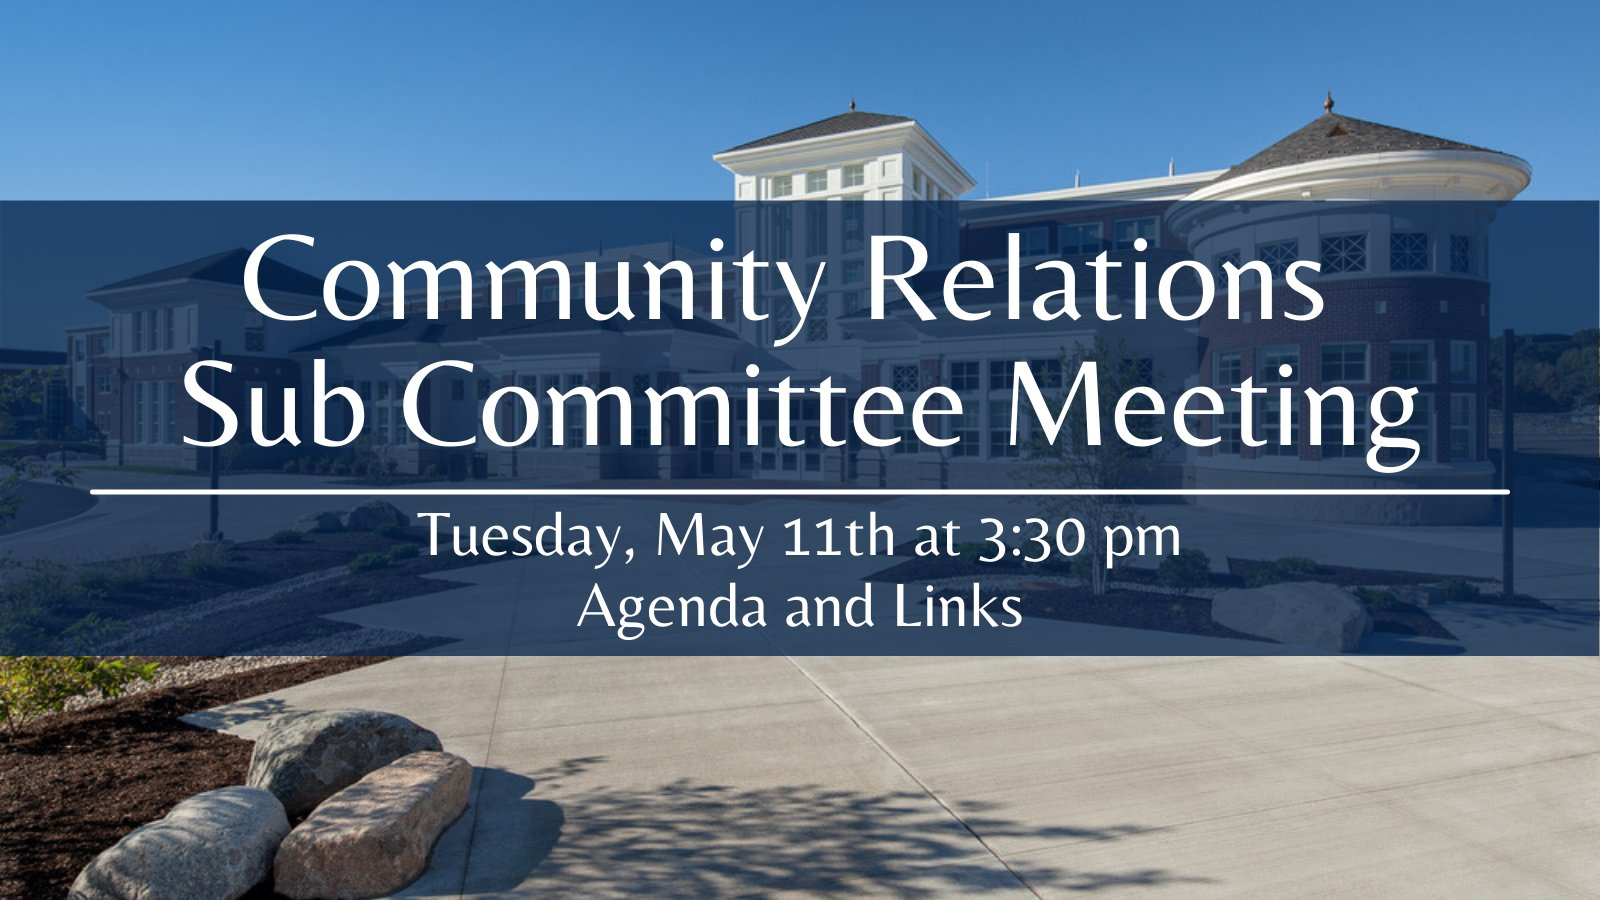 Community Relations Subcommittee Meeting - May 11